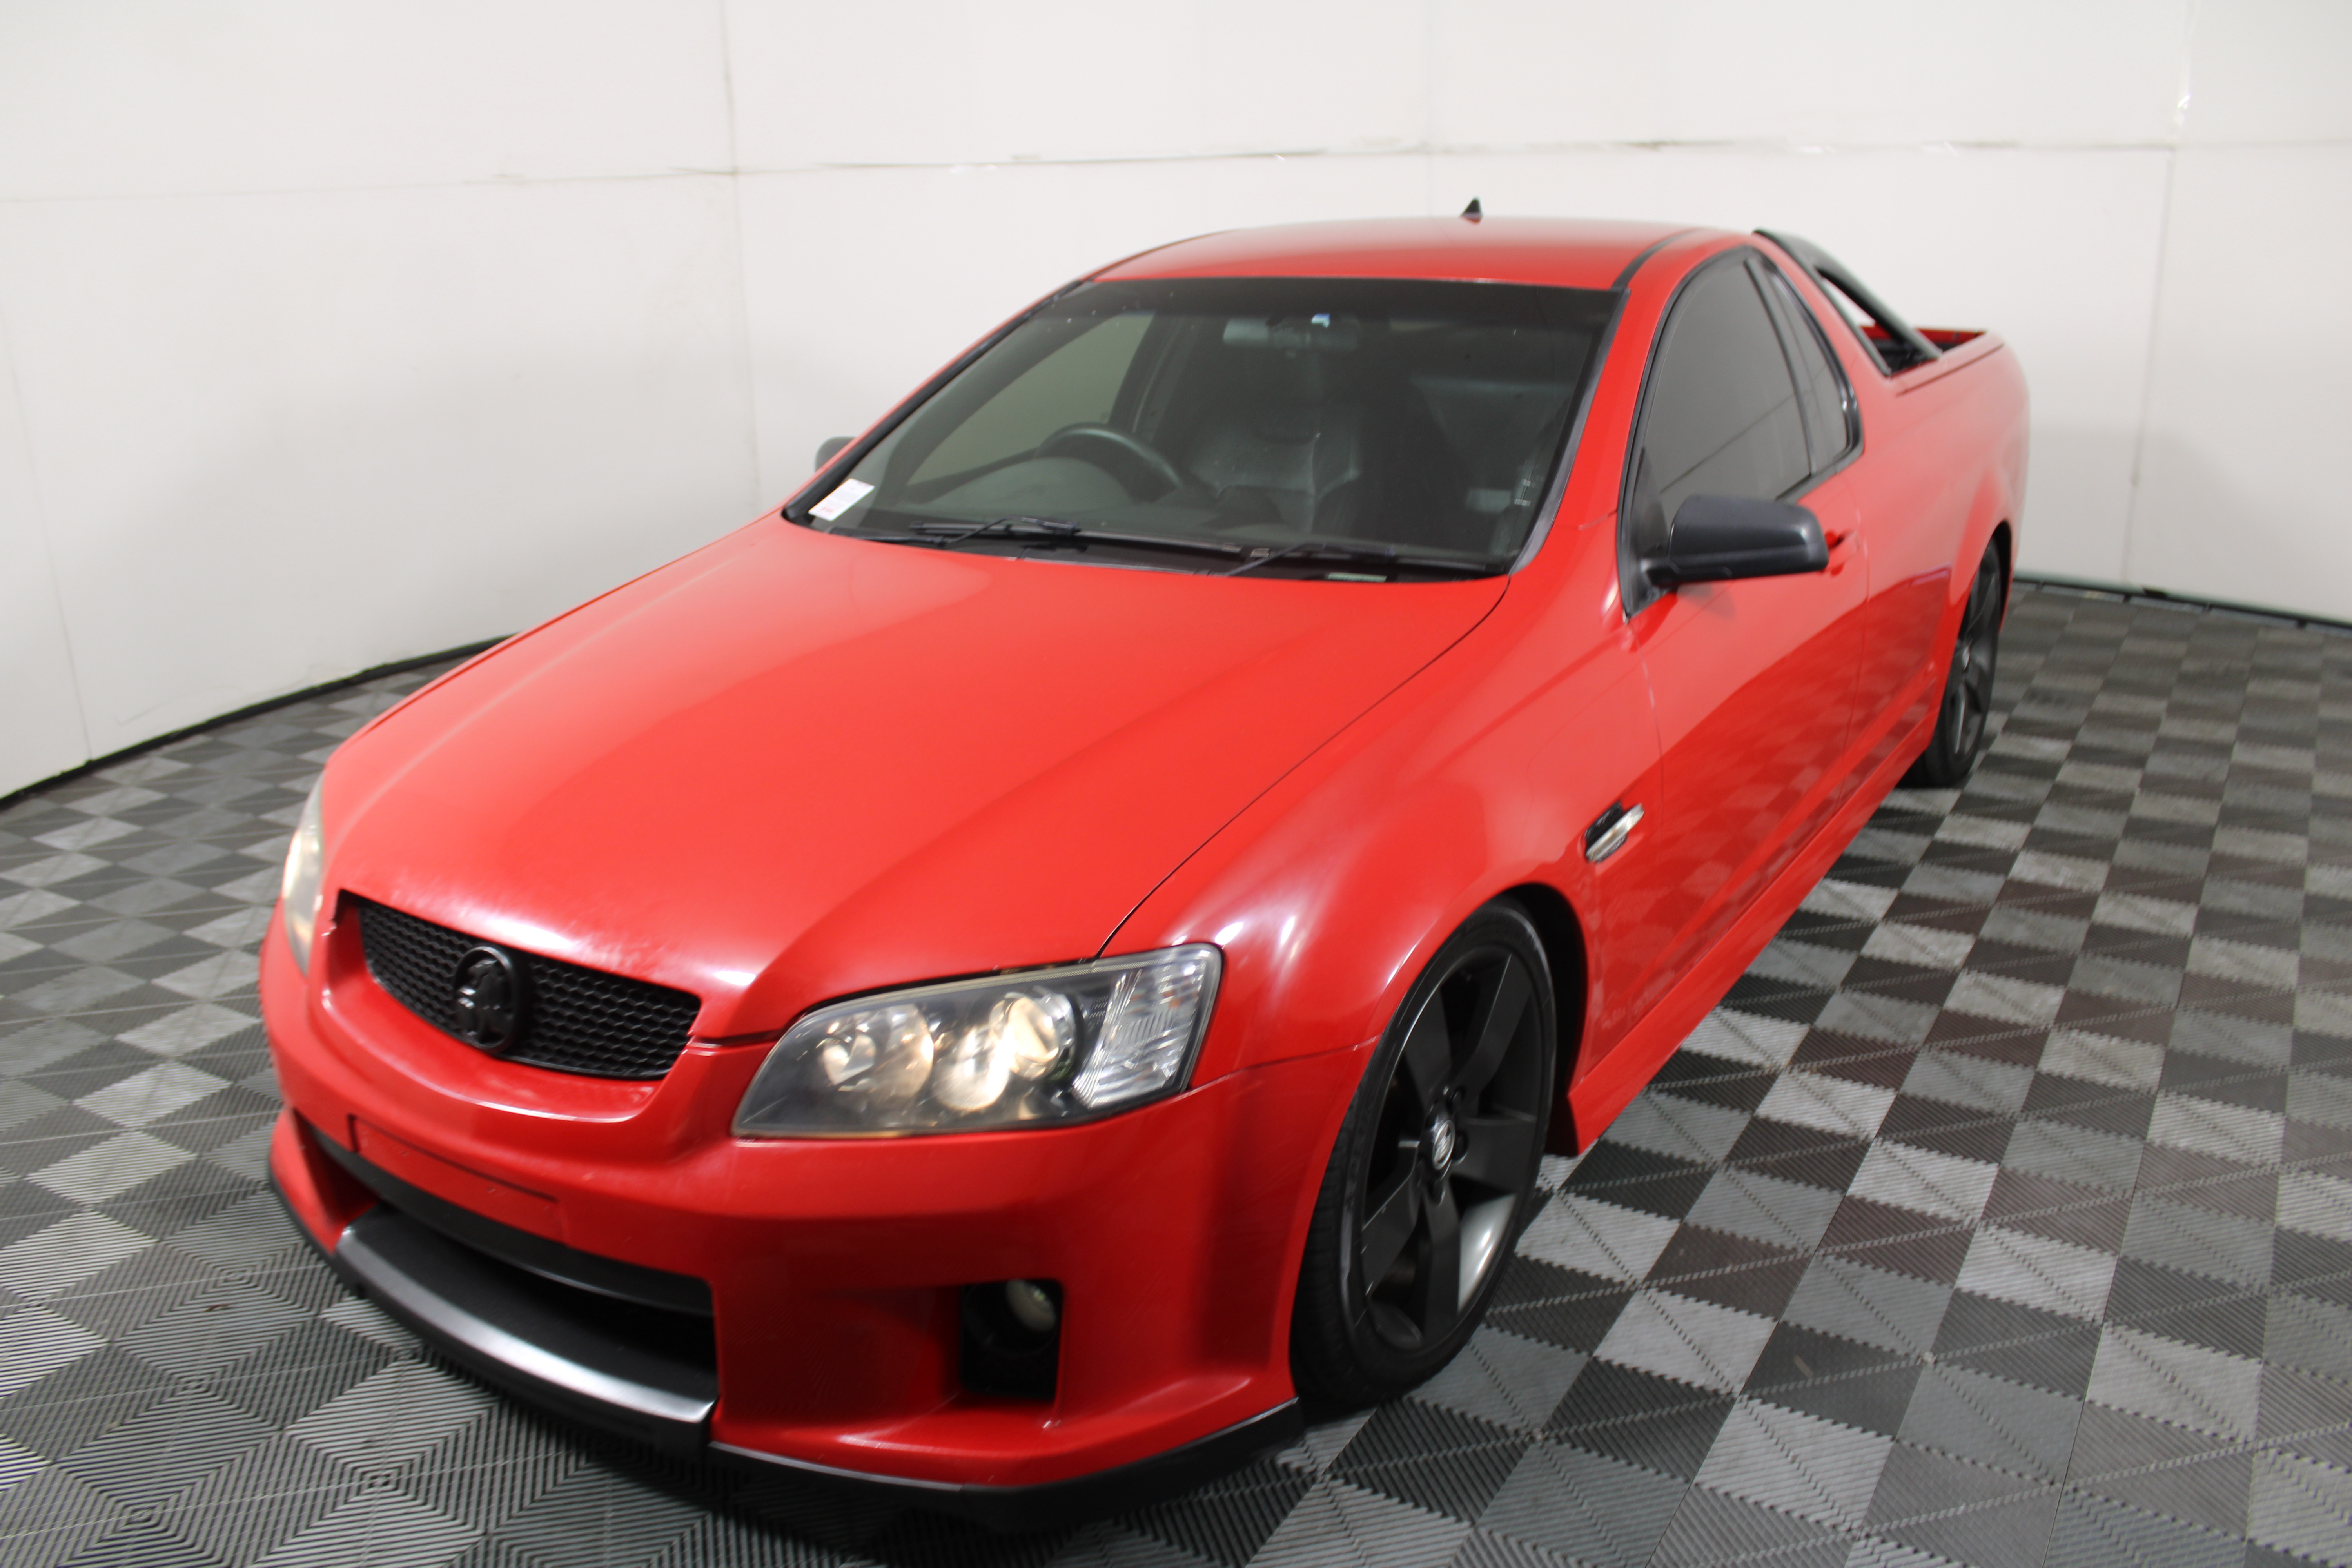 2008 Holden Commodore VE SV6 Manual Ute, 62,972km